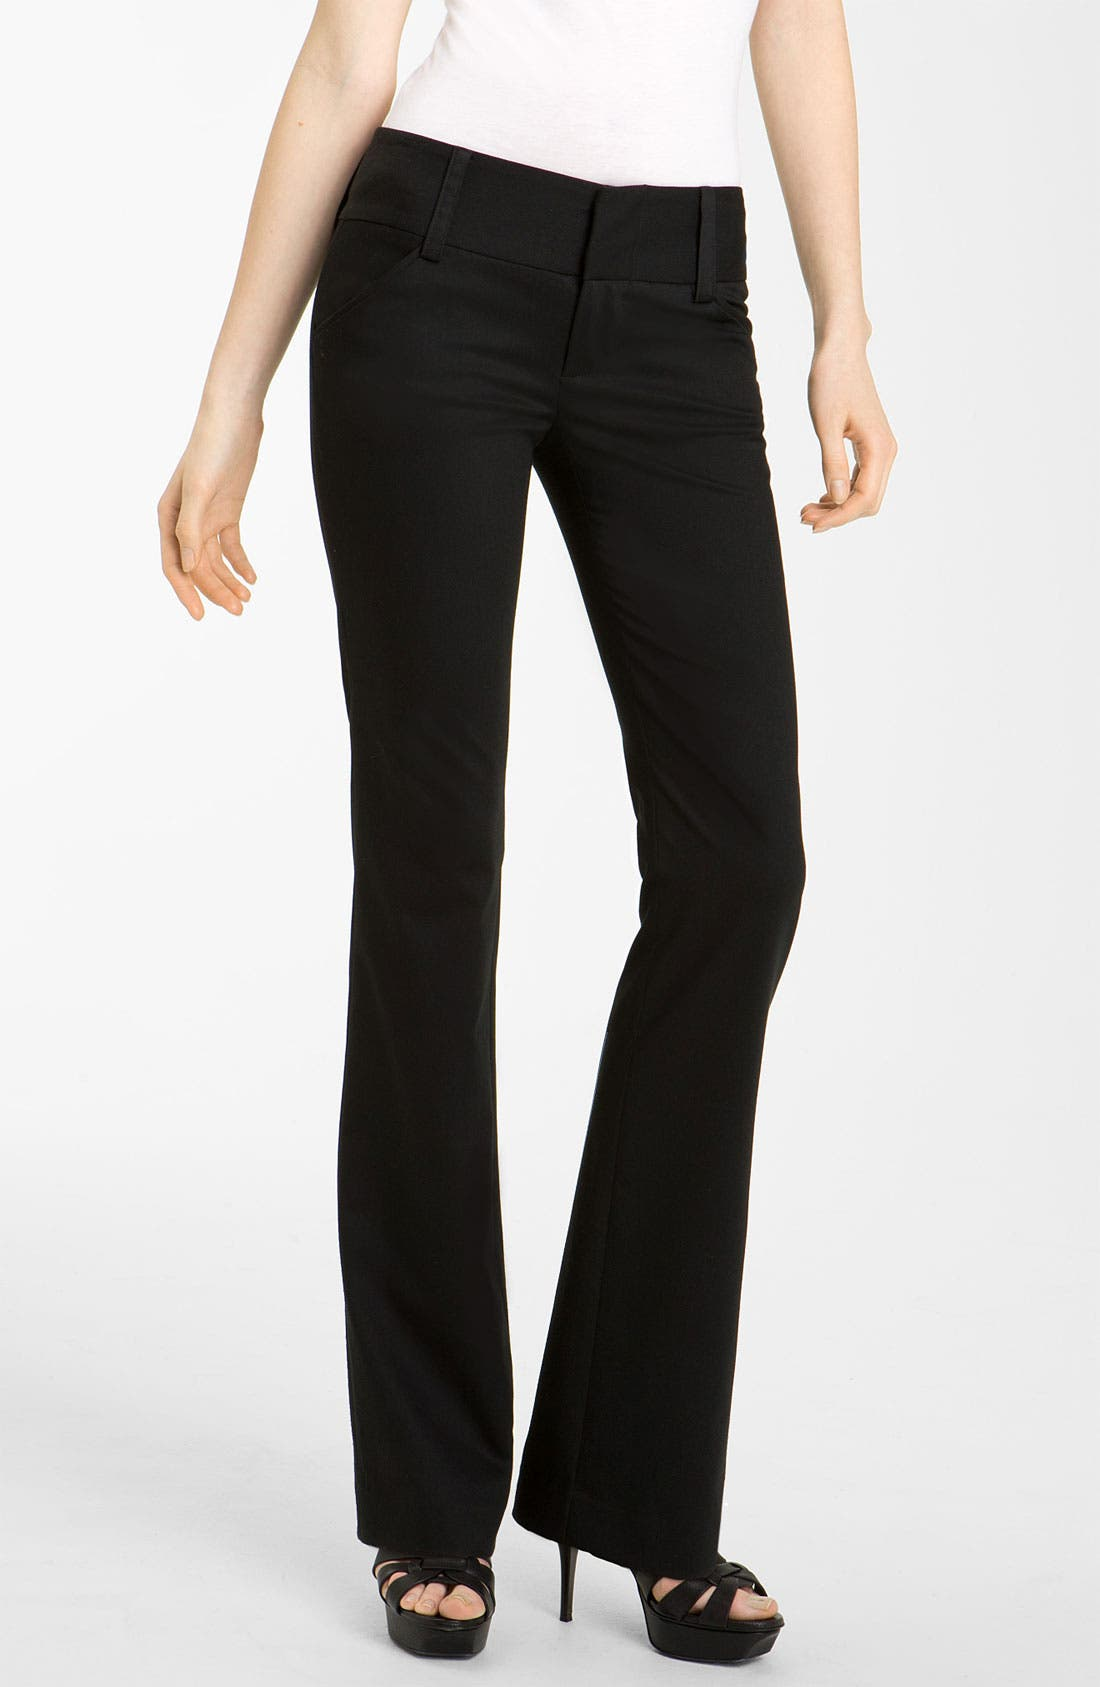 Alternate Image 1 Selected - Alice + Olivia 'Olivia' Flare Leg Stretch Wool Pants